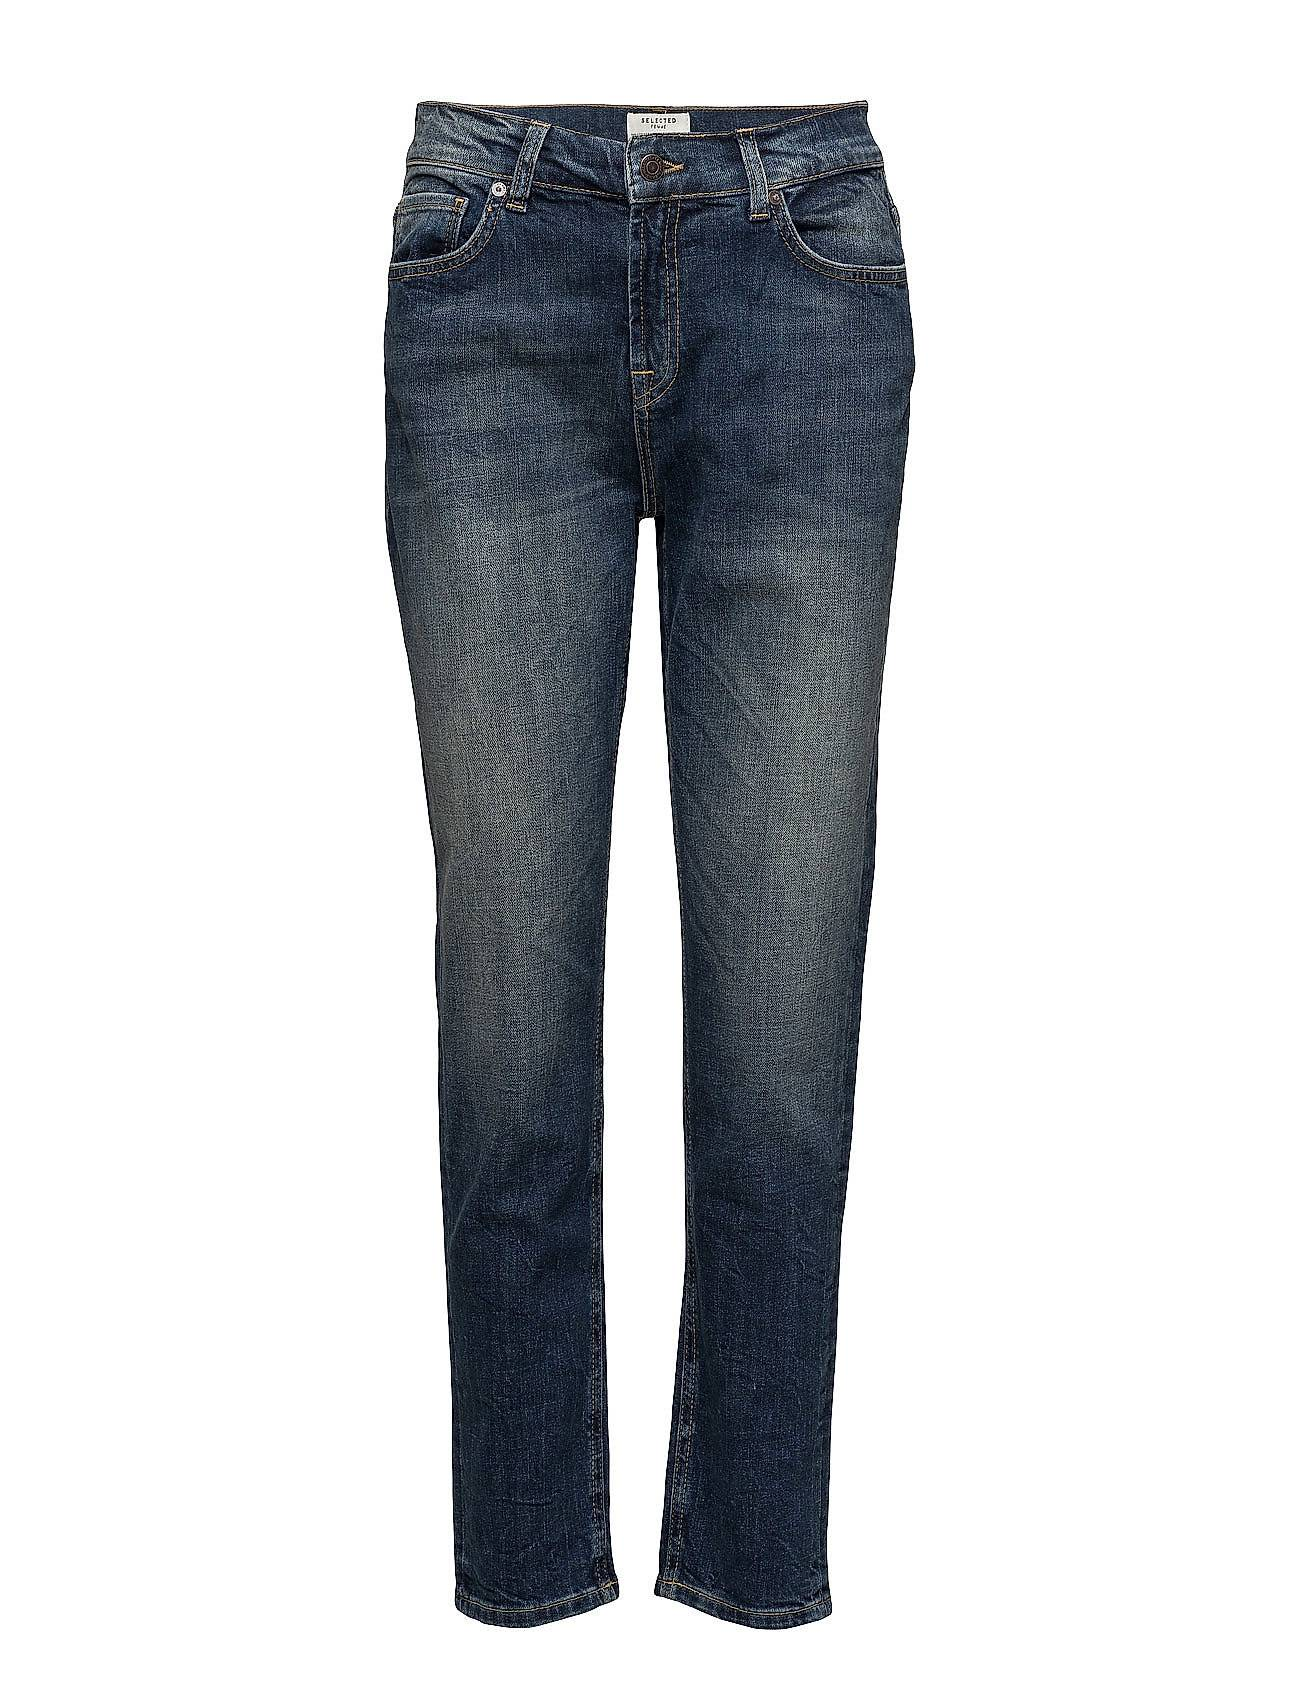 Selected Femme Sfroxy Lr Boyfriend Navy Wash Noos